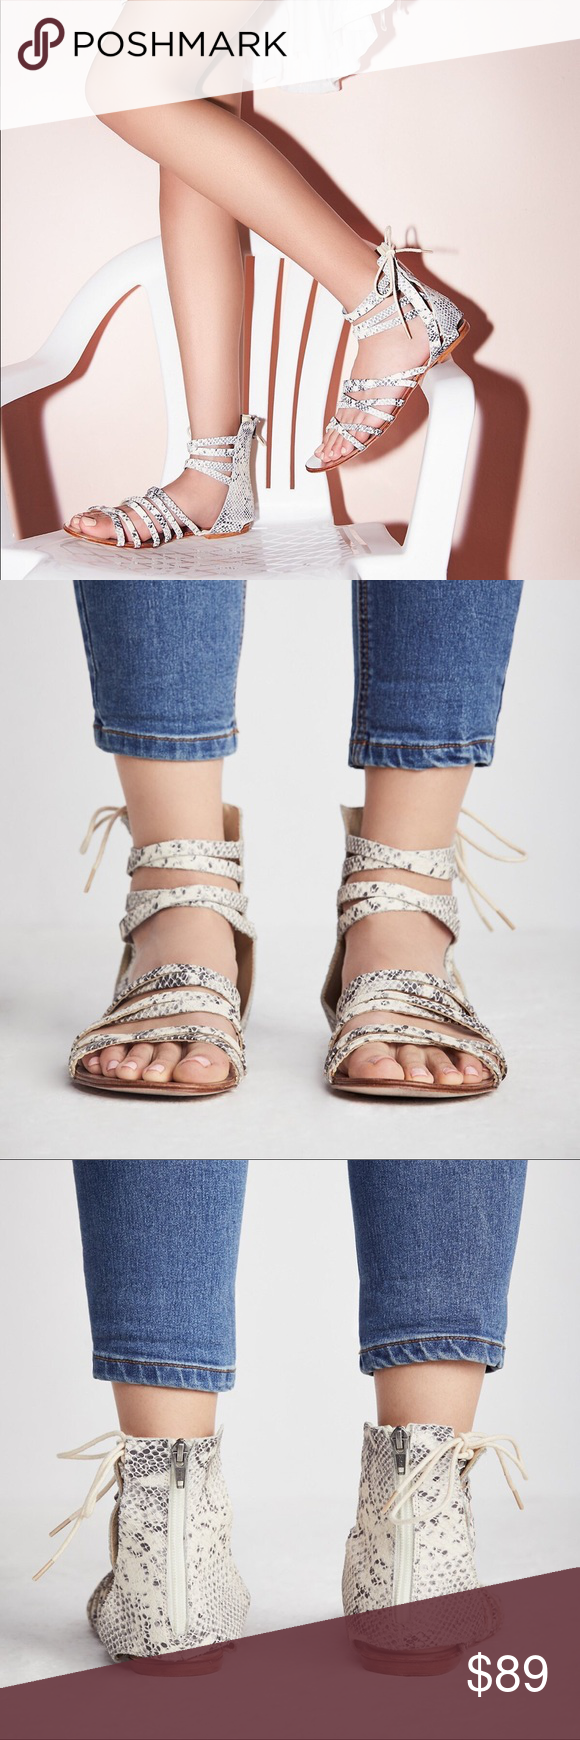 38030a0efdf Free People Juliette Wrap Sandal Eye catching sandal featuring an ...